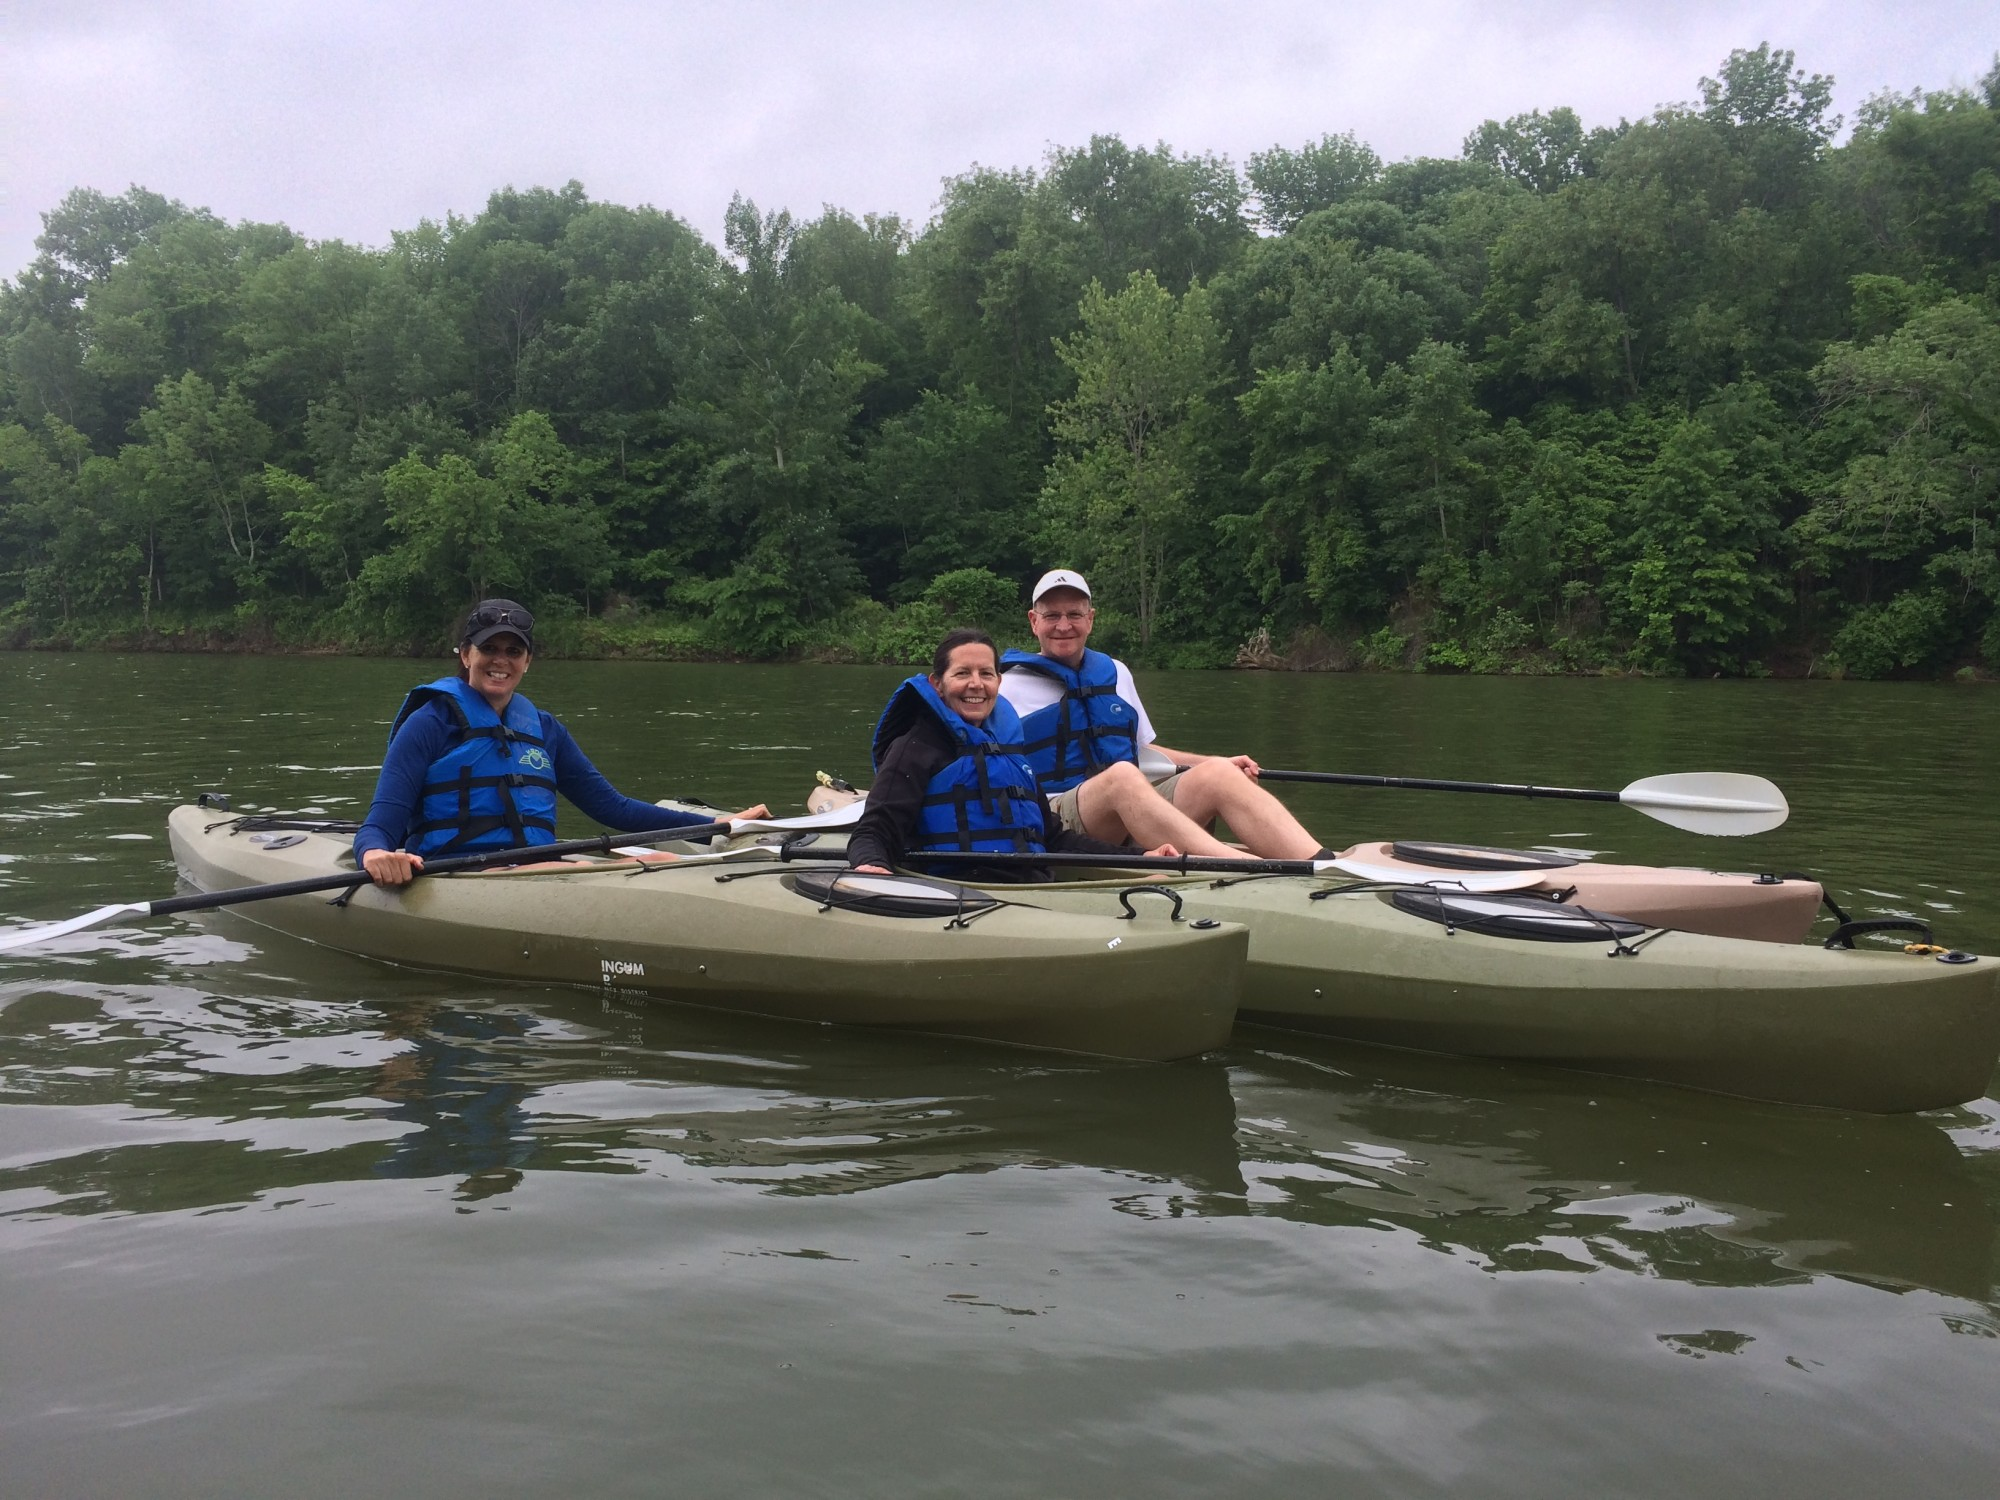 Registration Now Open for Guided Kayak Events at Seneca Lake!